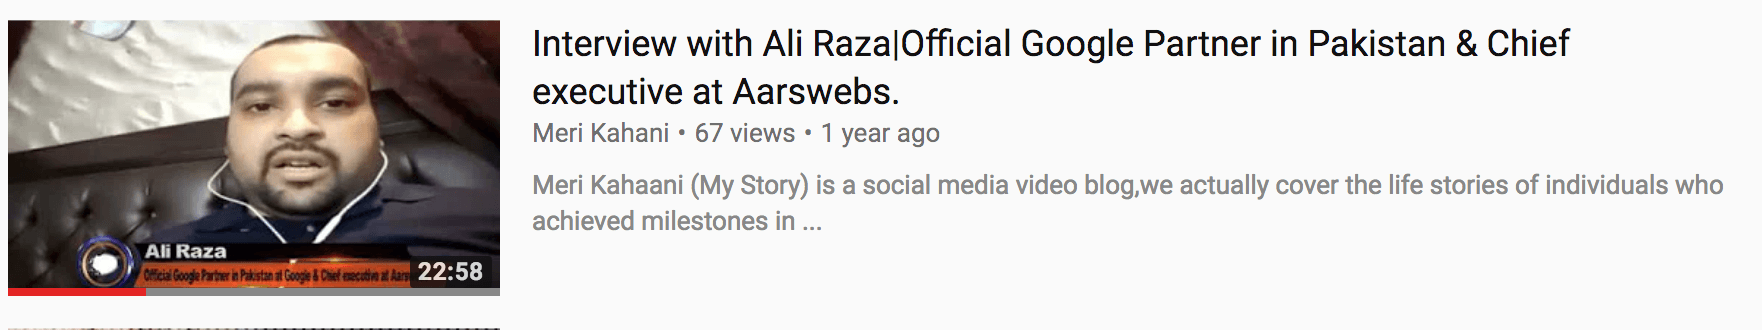 ali raza interview for how to rank youtube video example youtube seo